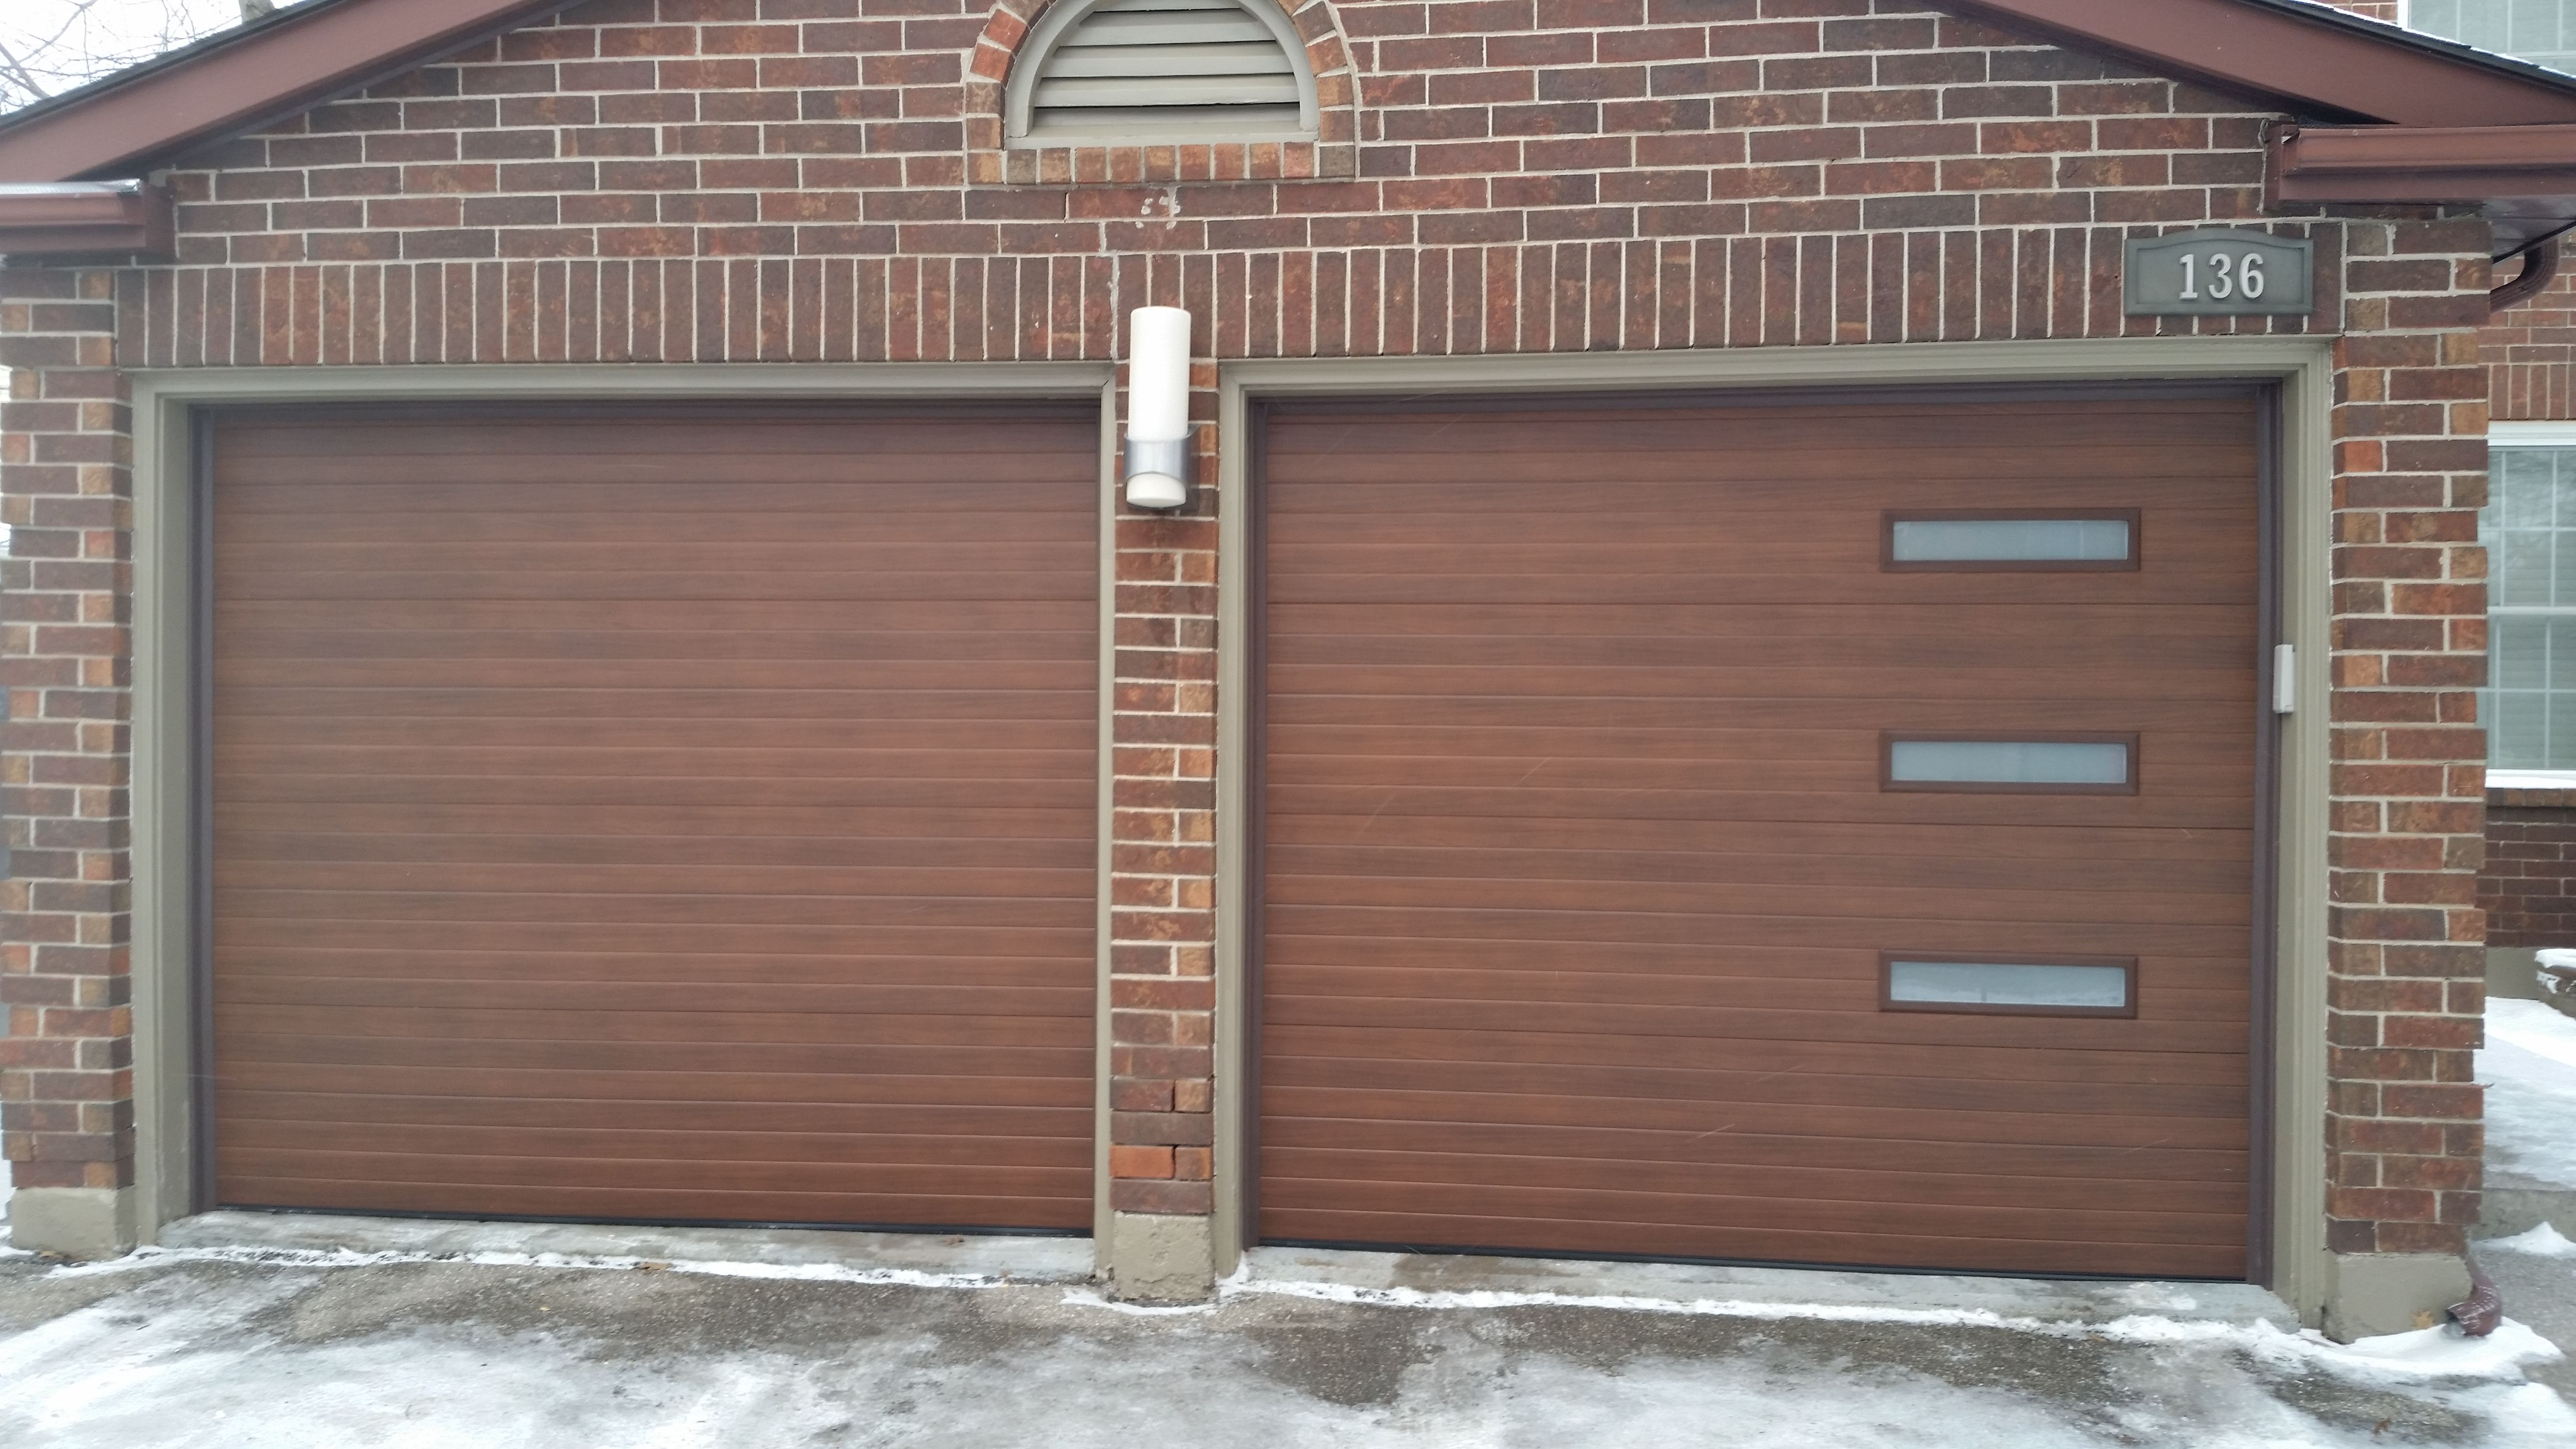 SteelCraft Contemporary in Walnut with Thermopane Glass with Satin Texture Finish & SteelCraft Contemporary in Walnut with Thermopane Glass with Satin ... pezcame.com